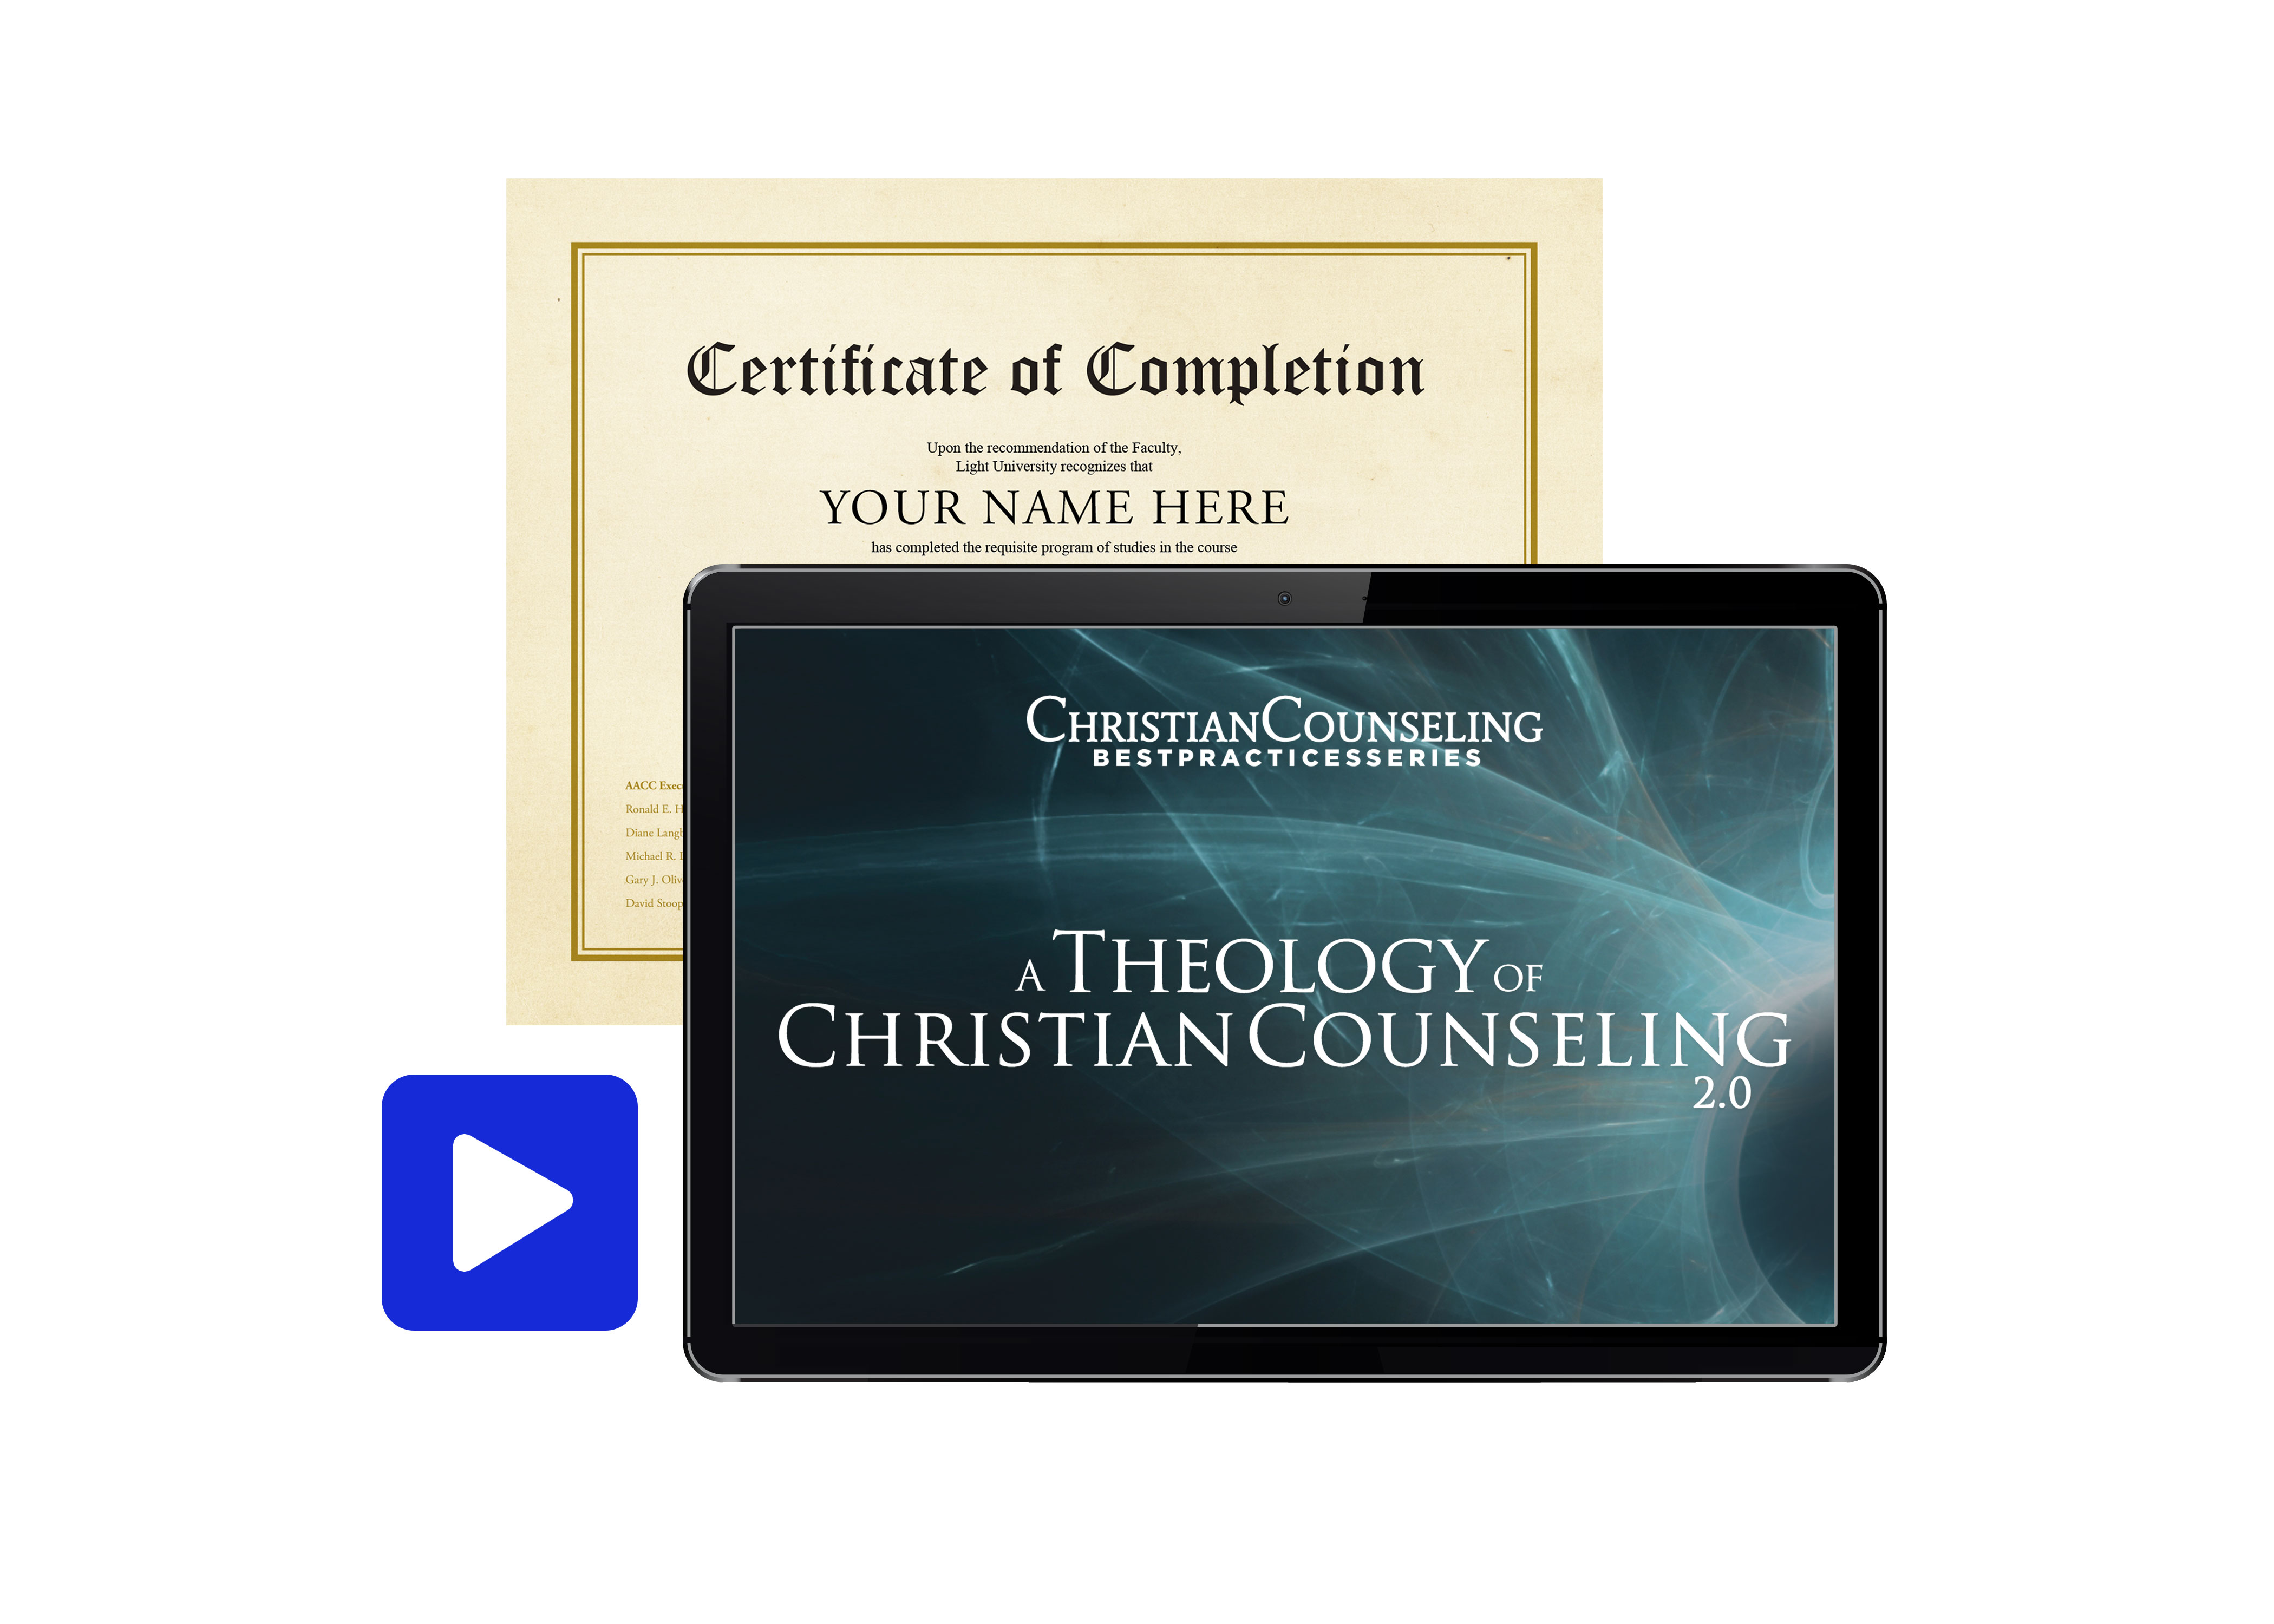 A Theology of Christian Counseling 2.0